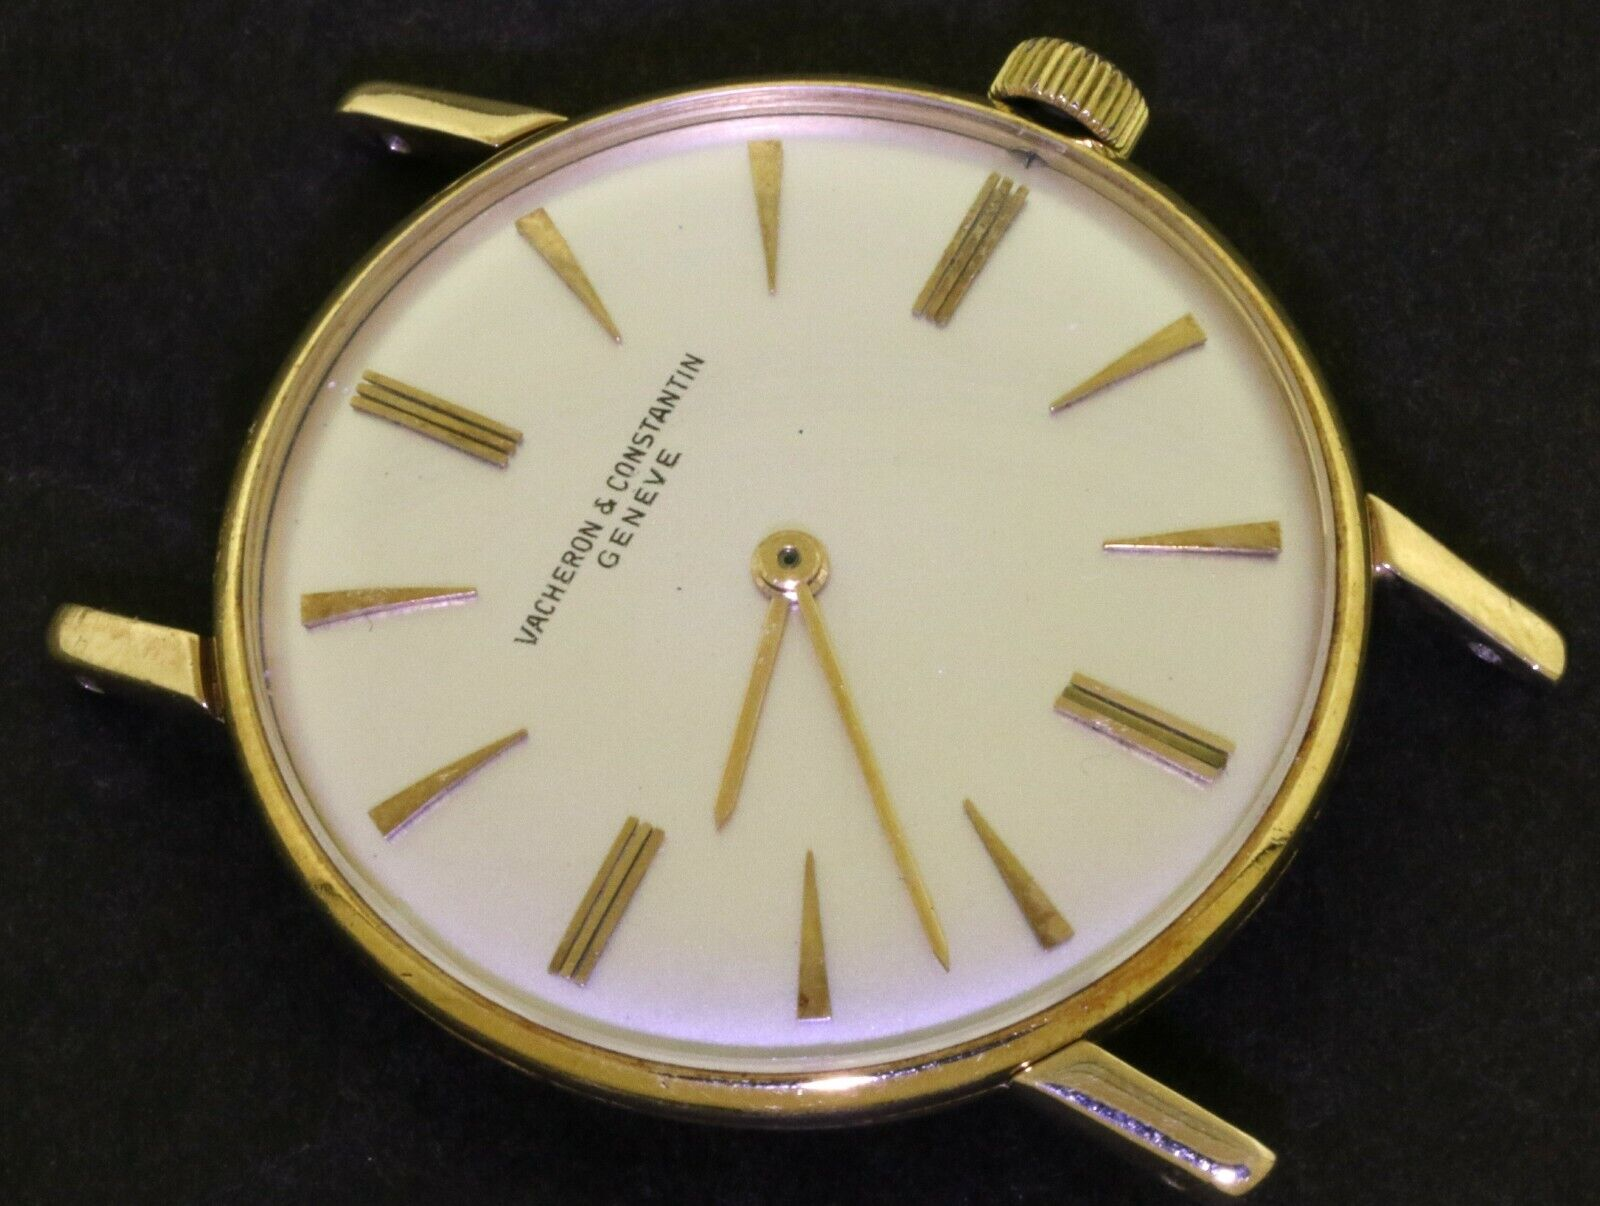 Vacheron & Constantin 18K gold manual winding men's watch w/ silver dial